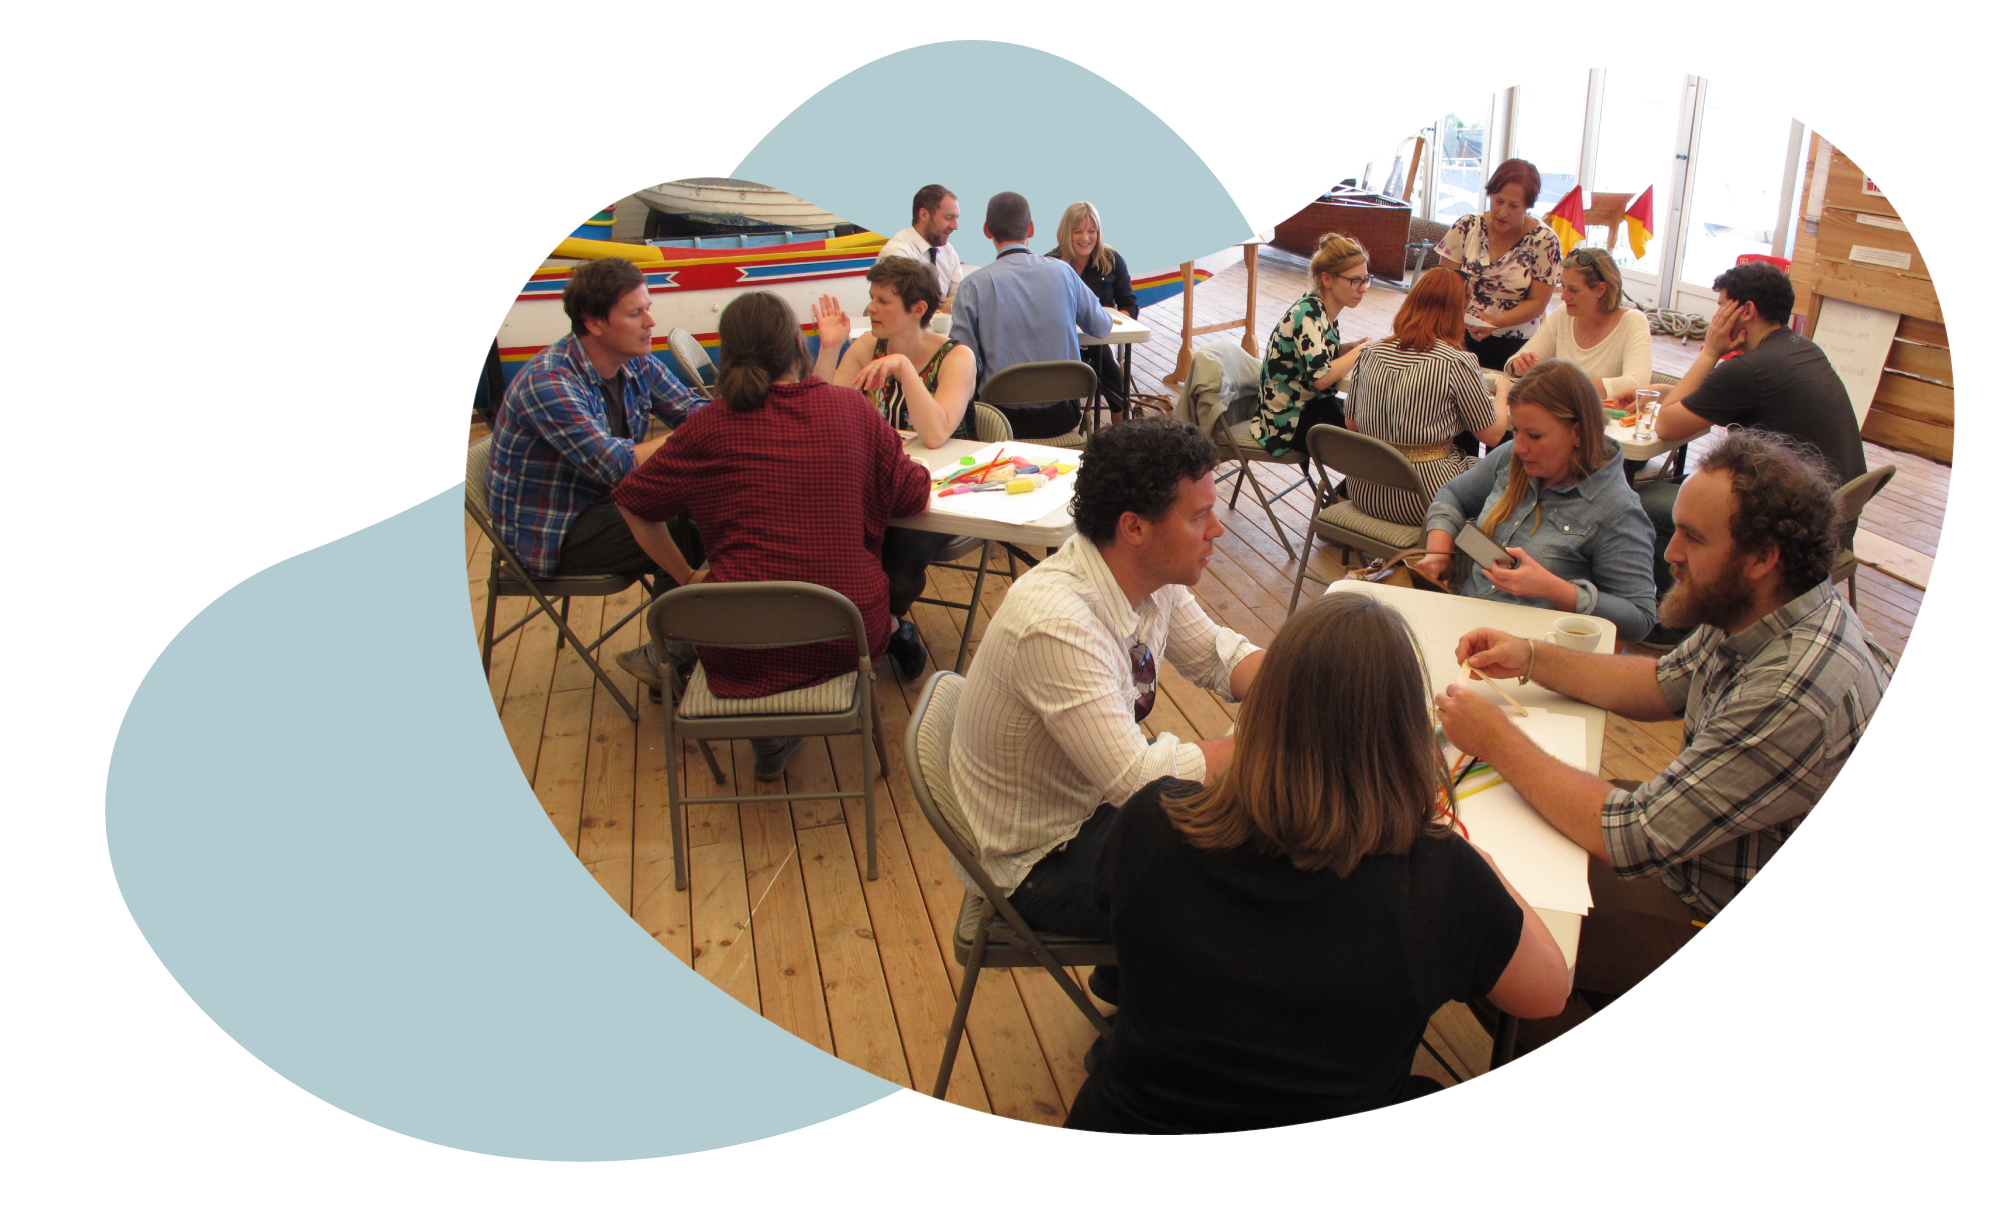 Image shows a group of people sat at different tables in smaller groups, taking part in a creative ideation workshop